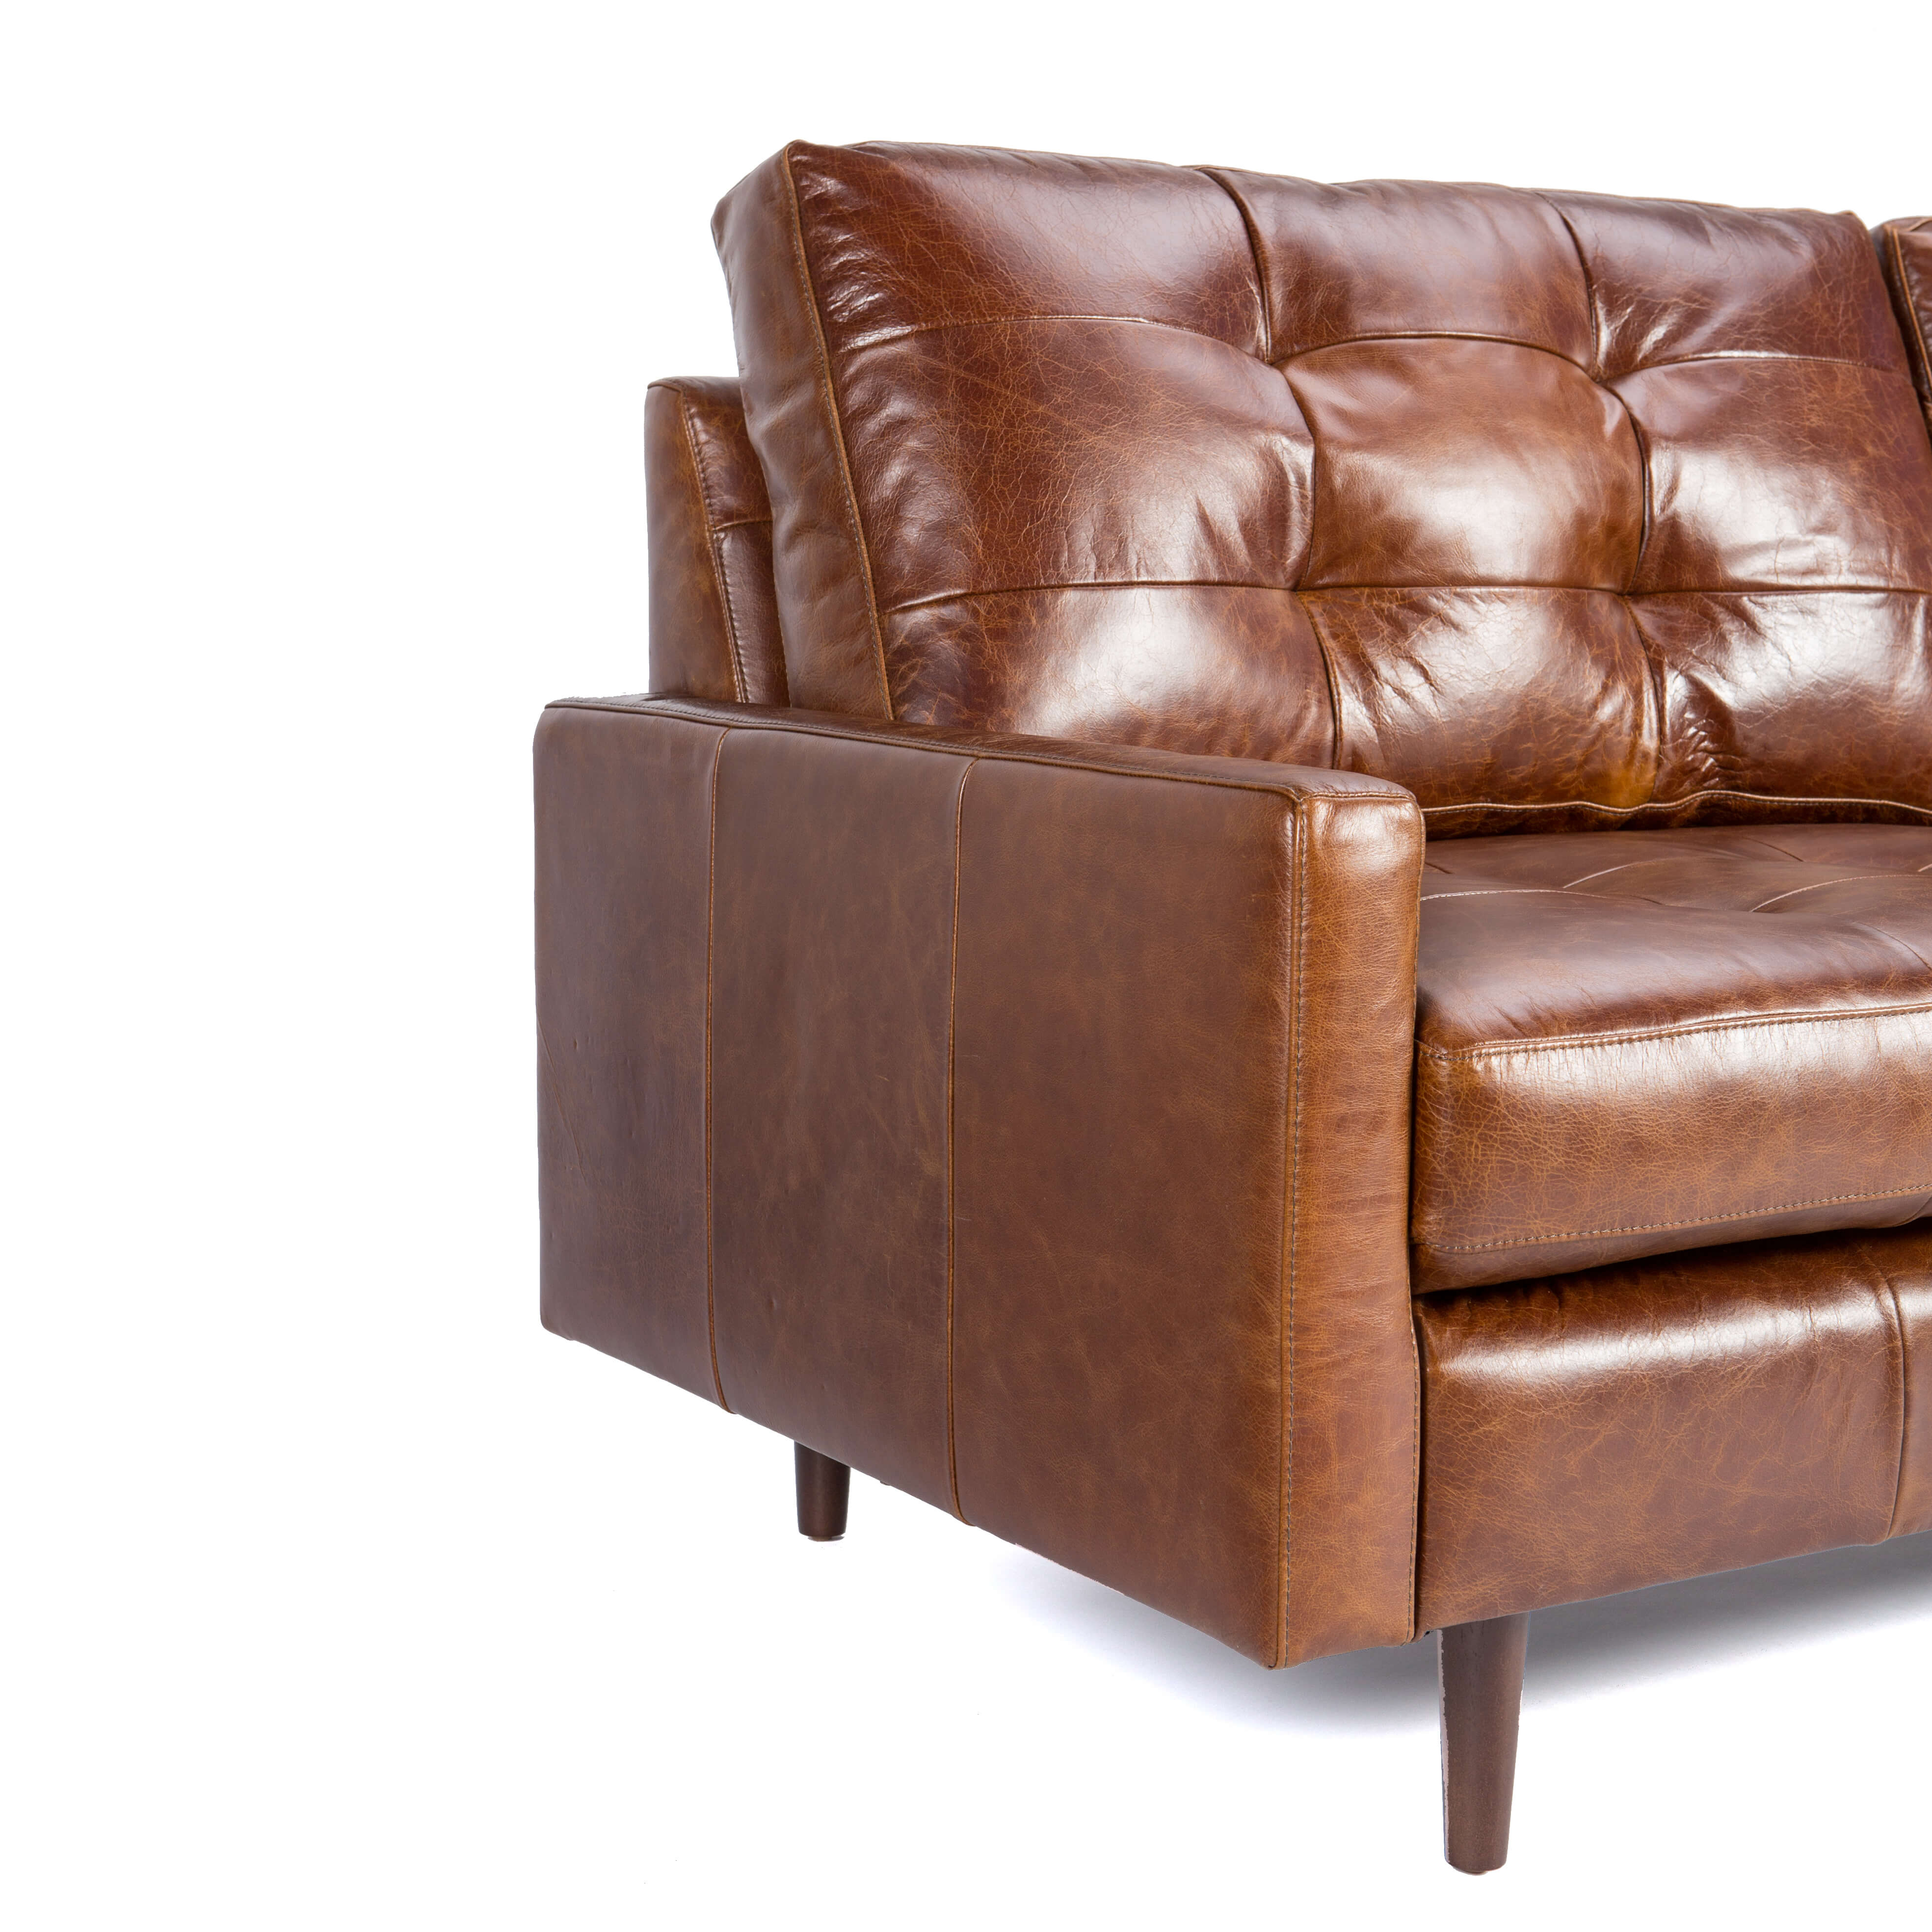 Leather Sofa With Tufted Back Cushion – Andrew – Zillo + Hutch Inside Andrew Leather Sofa Chairs (Image 21 of 25)